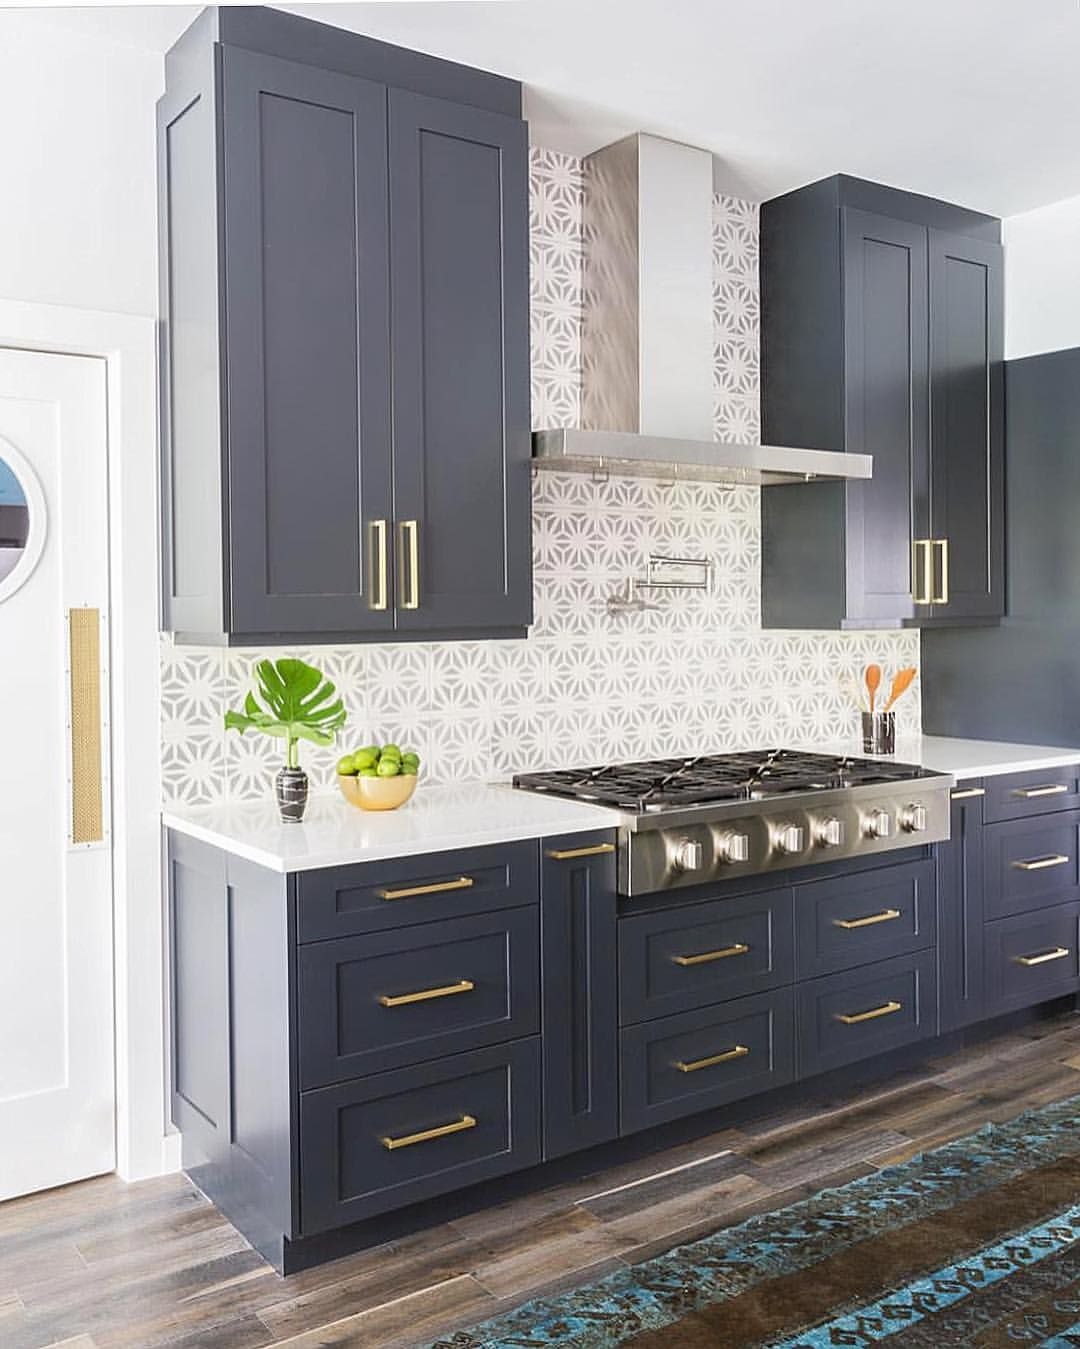 benjamin moore wolf gray a blue-grey painted kitchen cabinets with